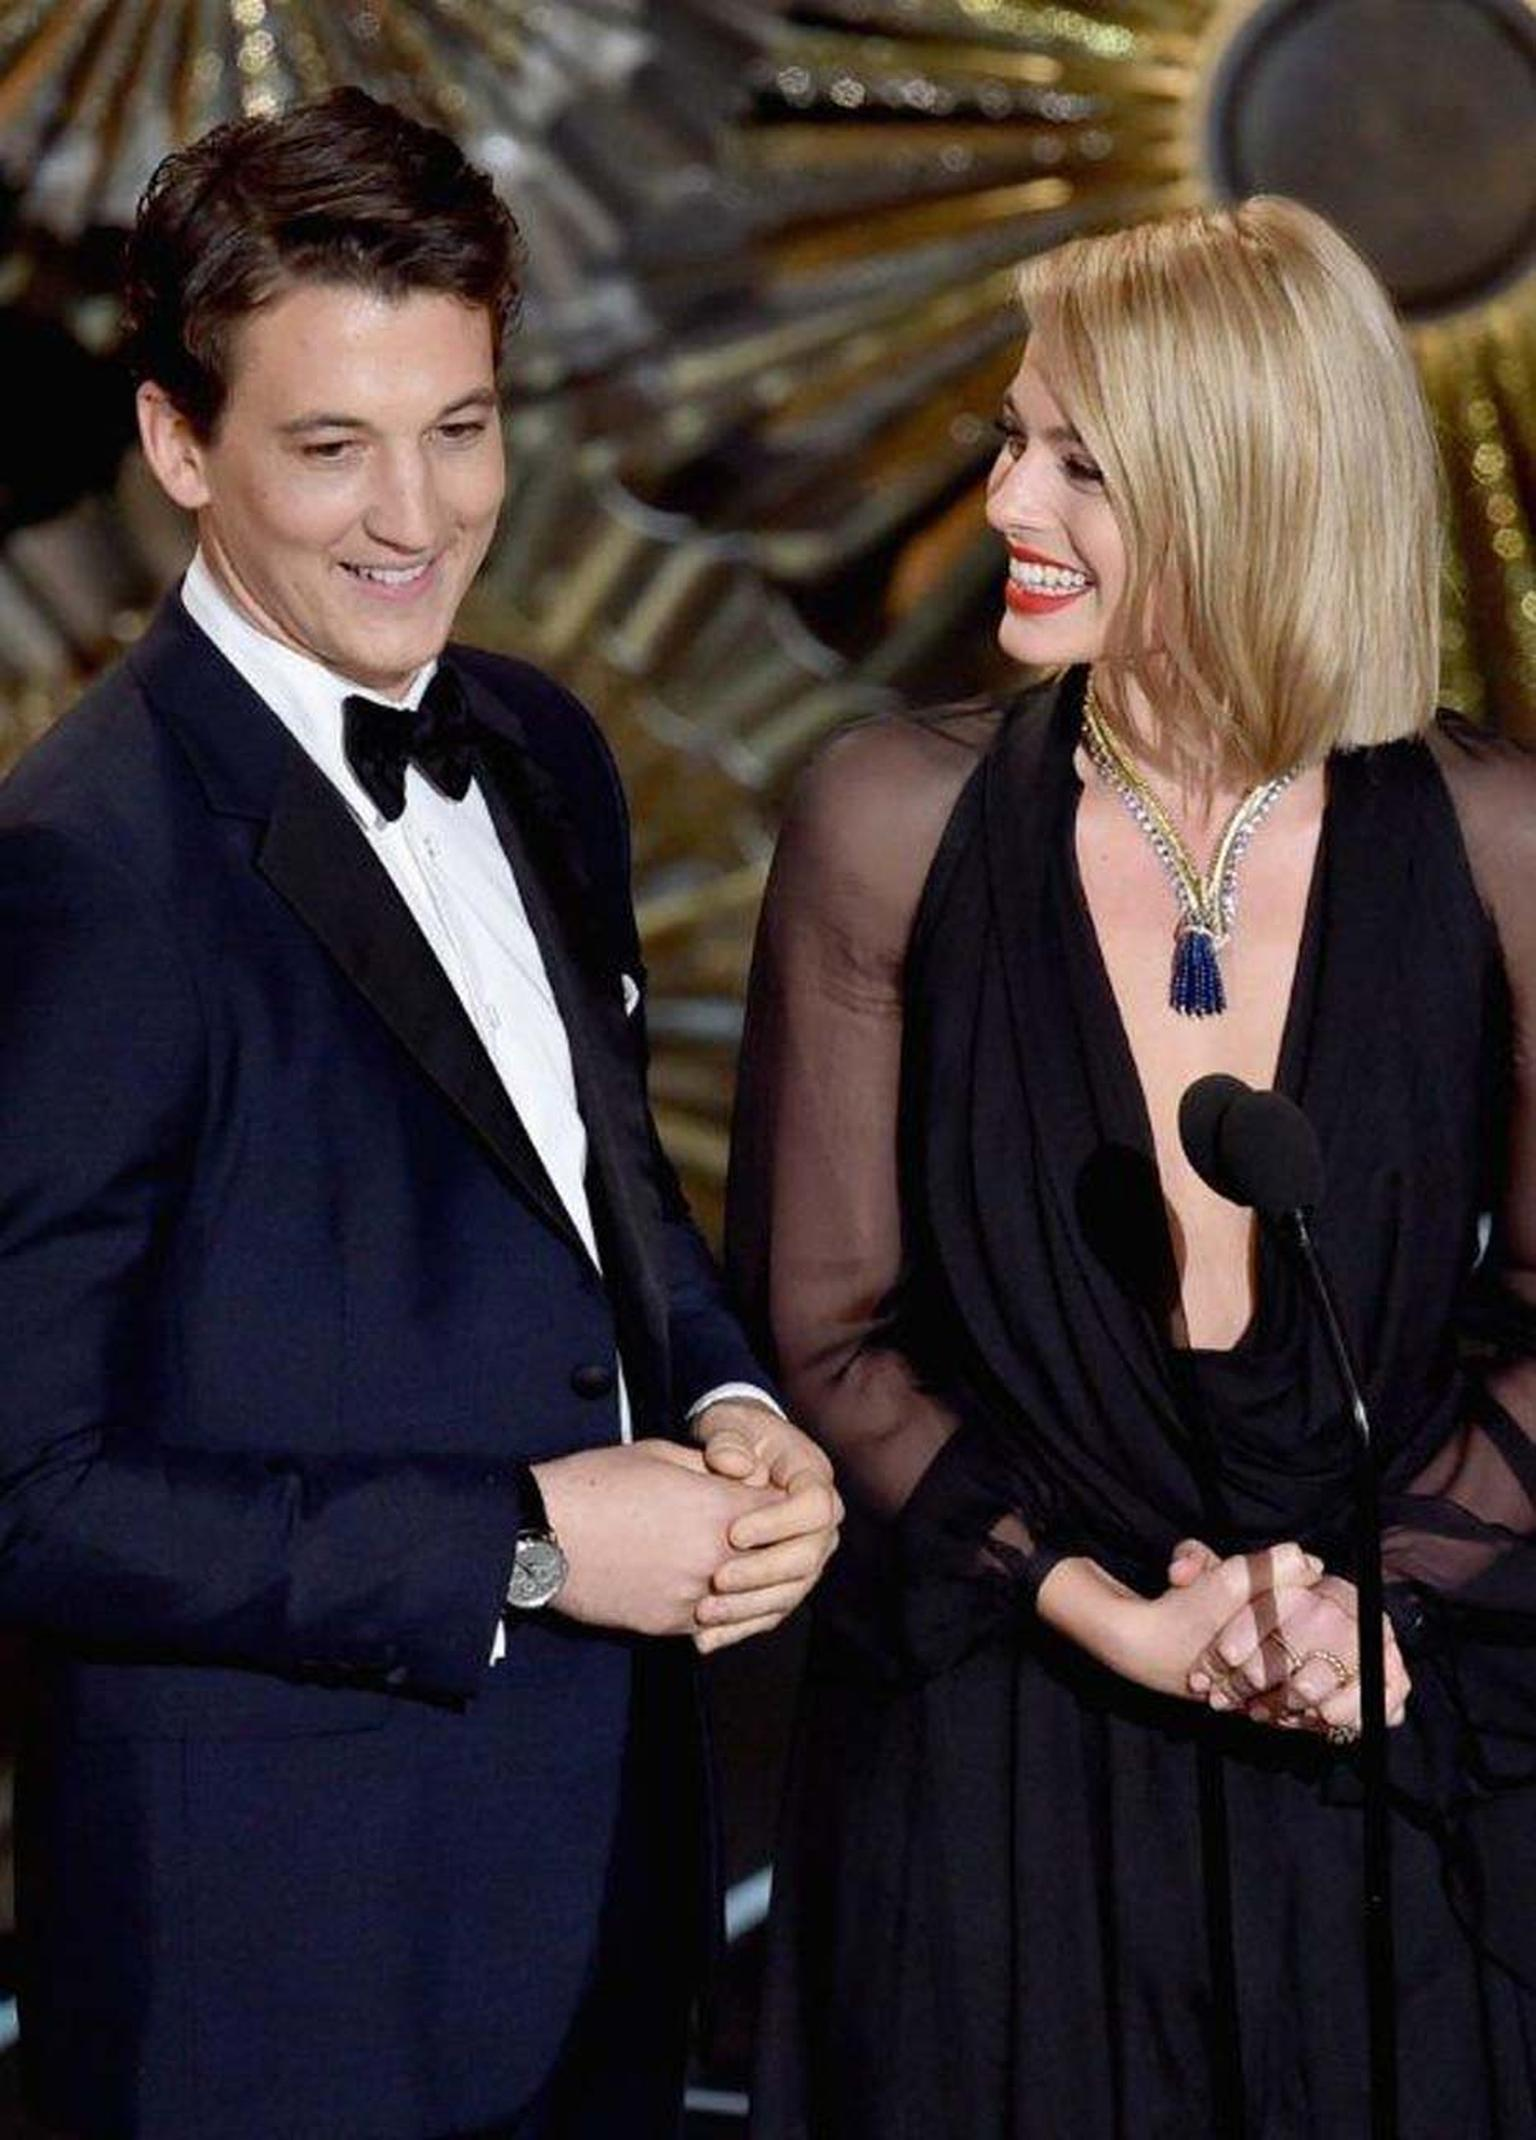 Van Cleef and Arpels_high jewelry_oscars_Margot Robbie_Miles Teller.jpg